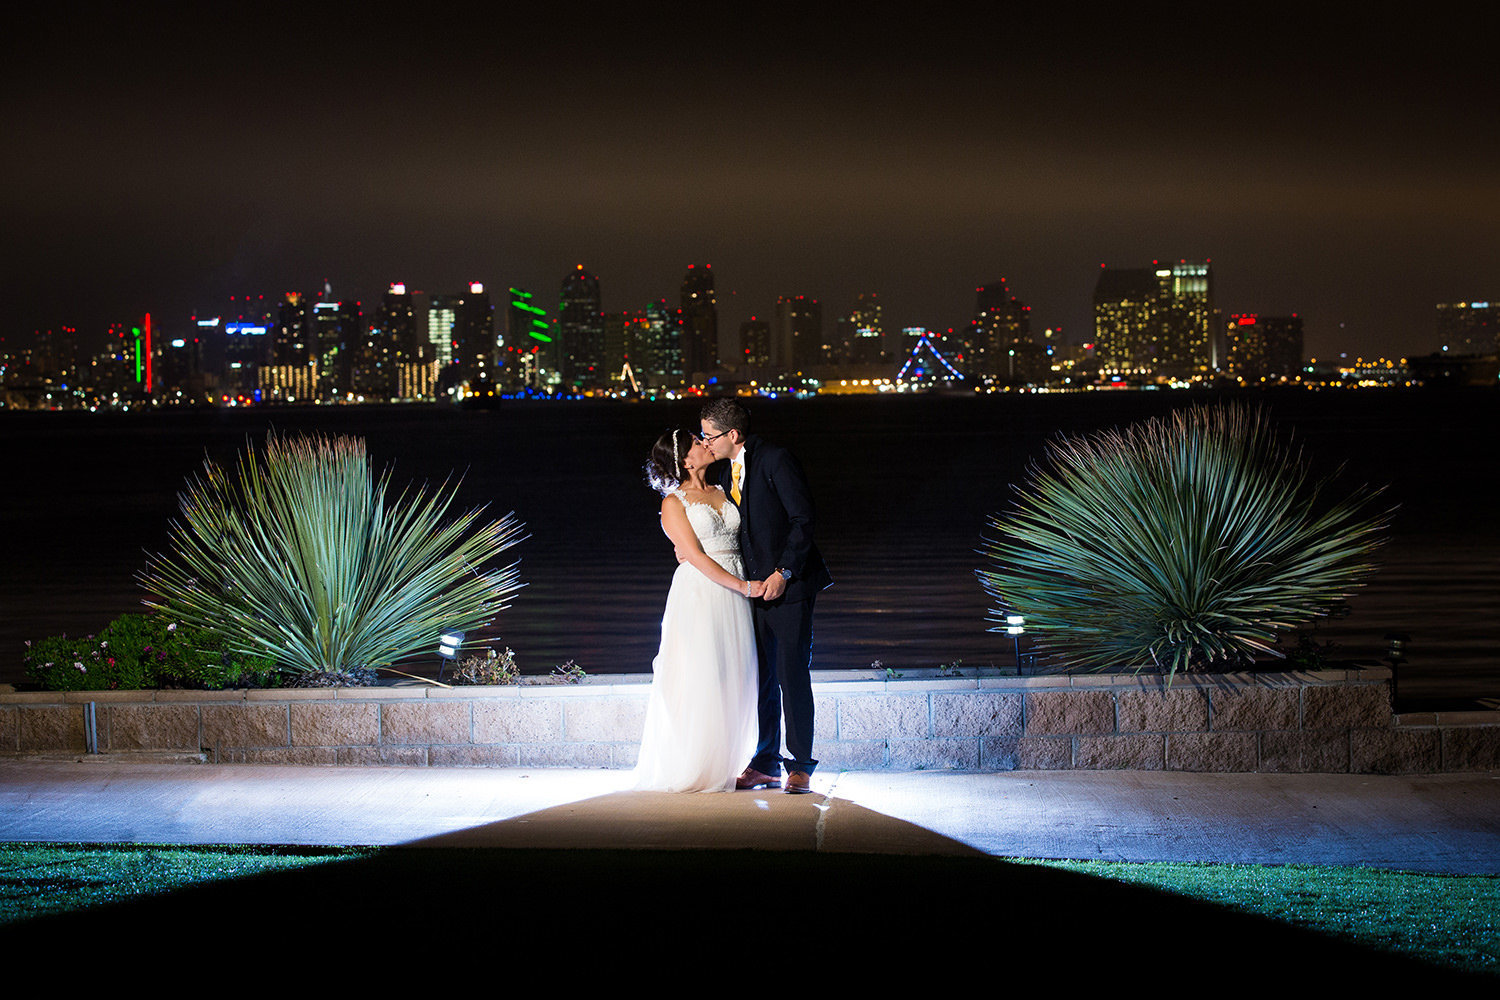 night image of bride and groom at admiral kidd club